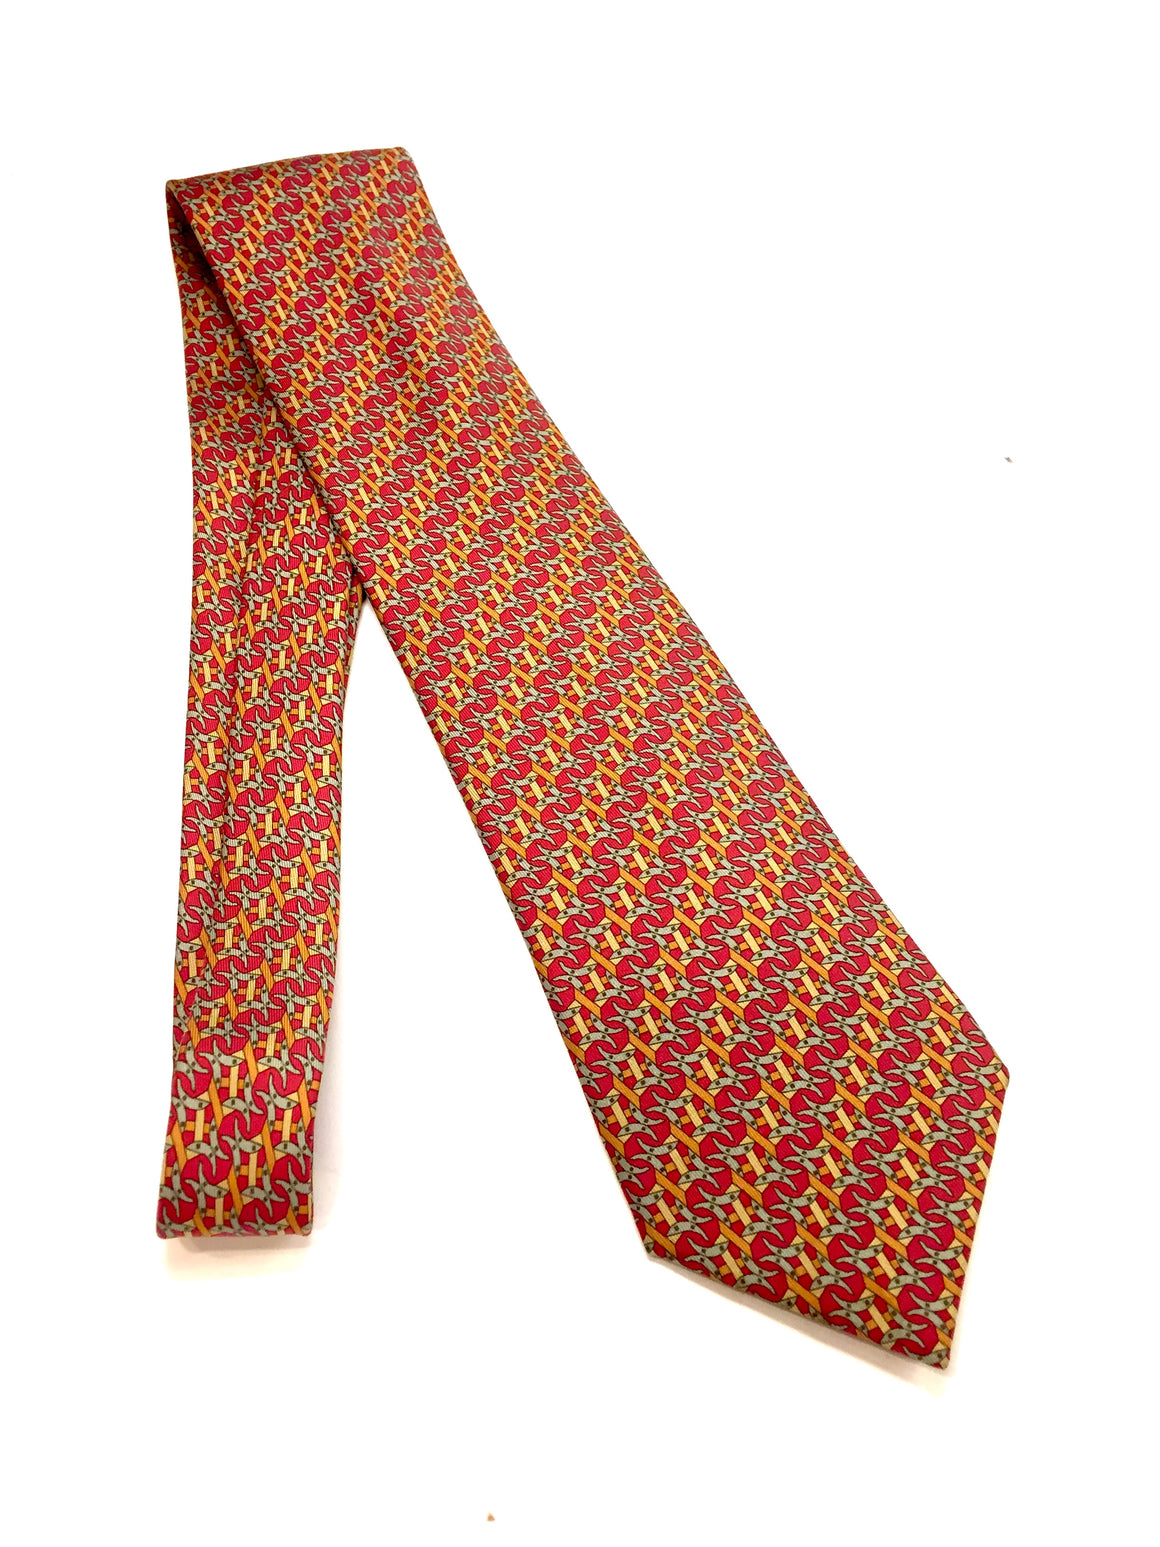 HERMES Red/Multicolor Intertwined Horse Shoes & Belt Straps Print Silk Neck Tie